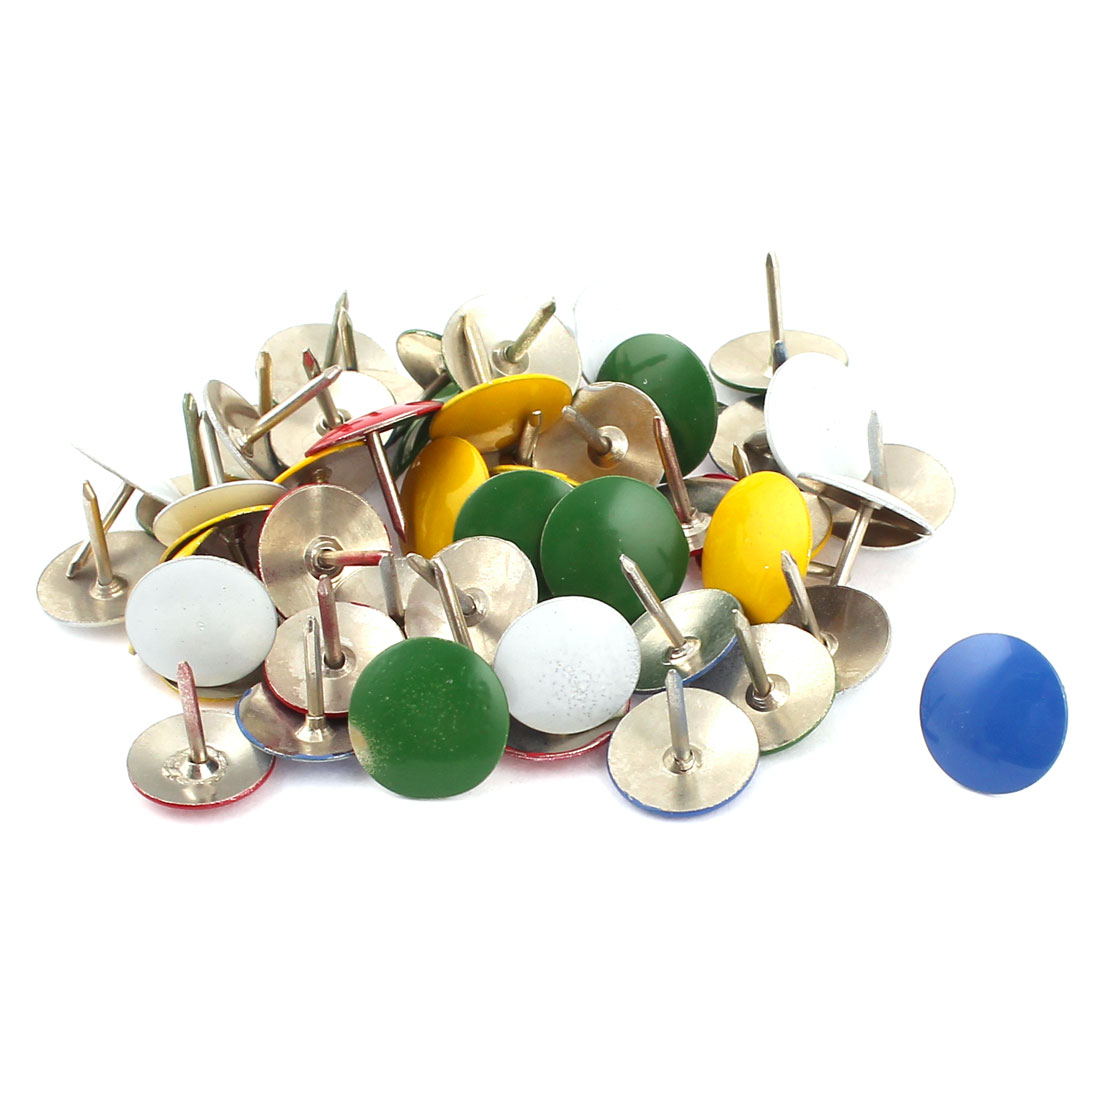 50 Pcs Multicolor Metal Message Board Thumbtacks Drawing Map Push Pins